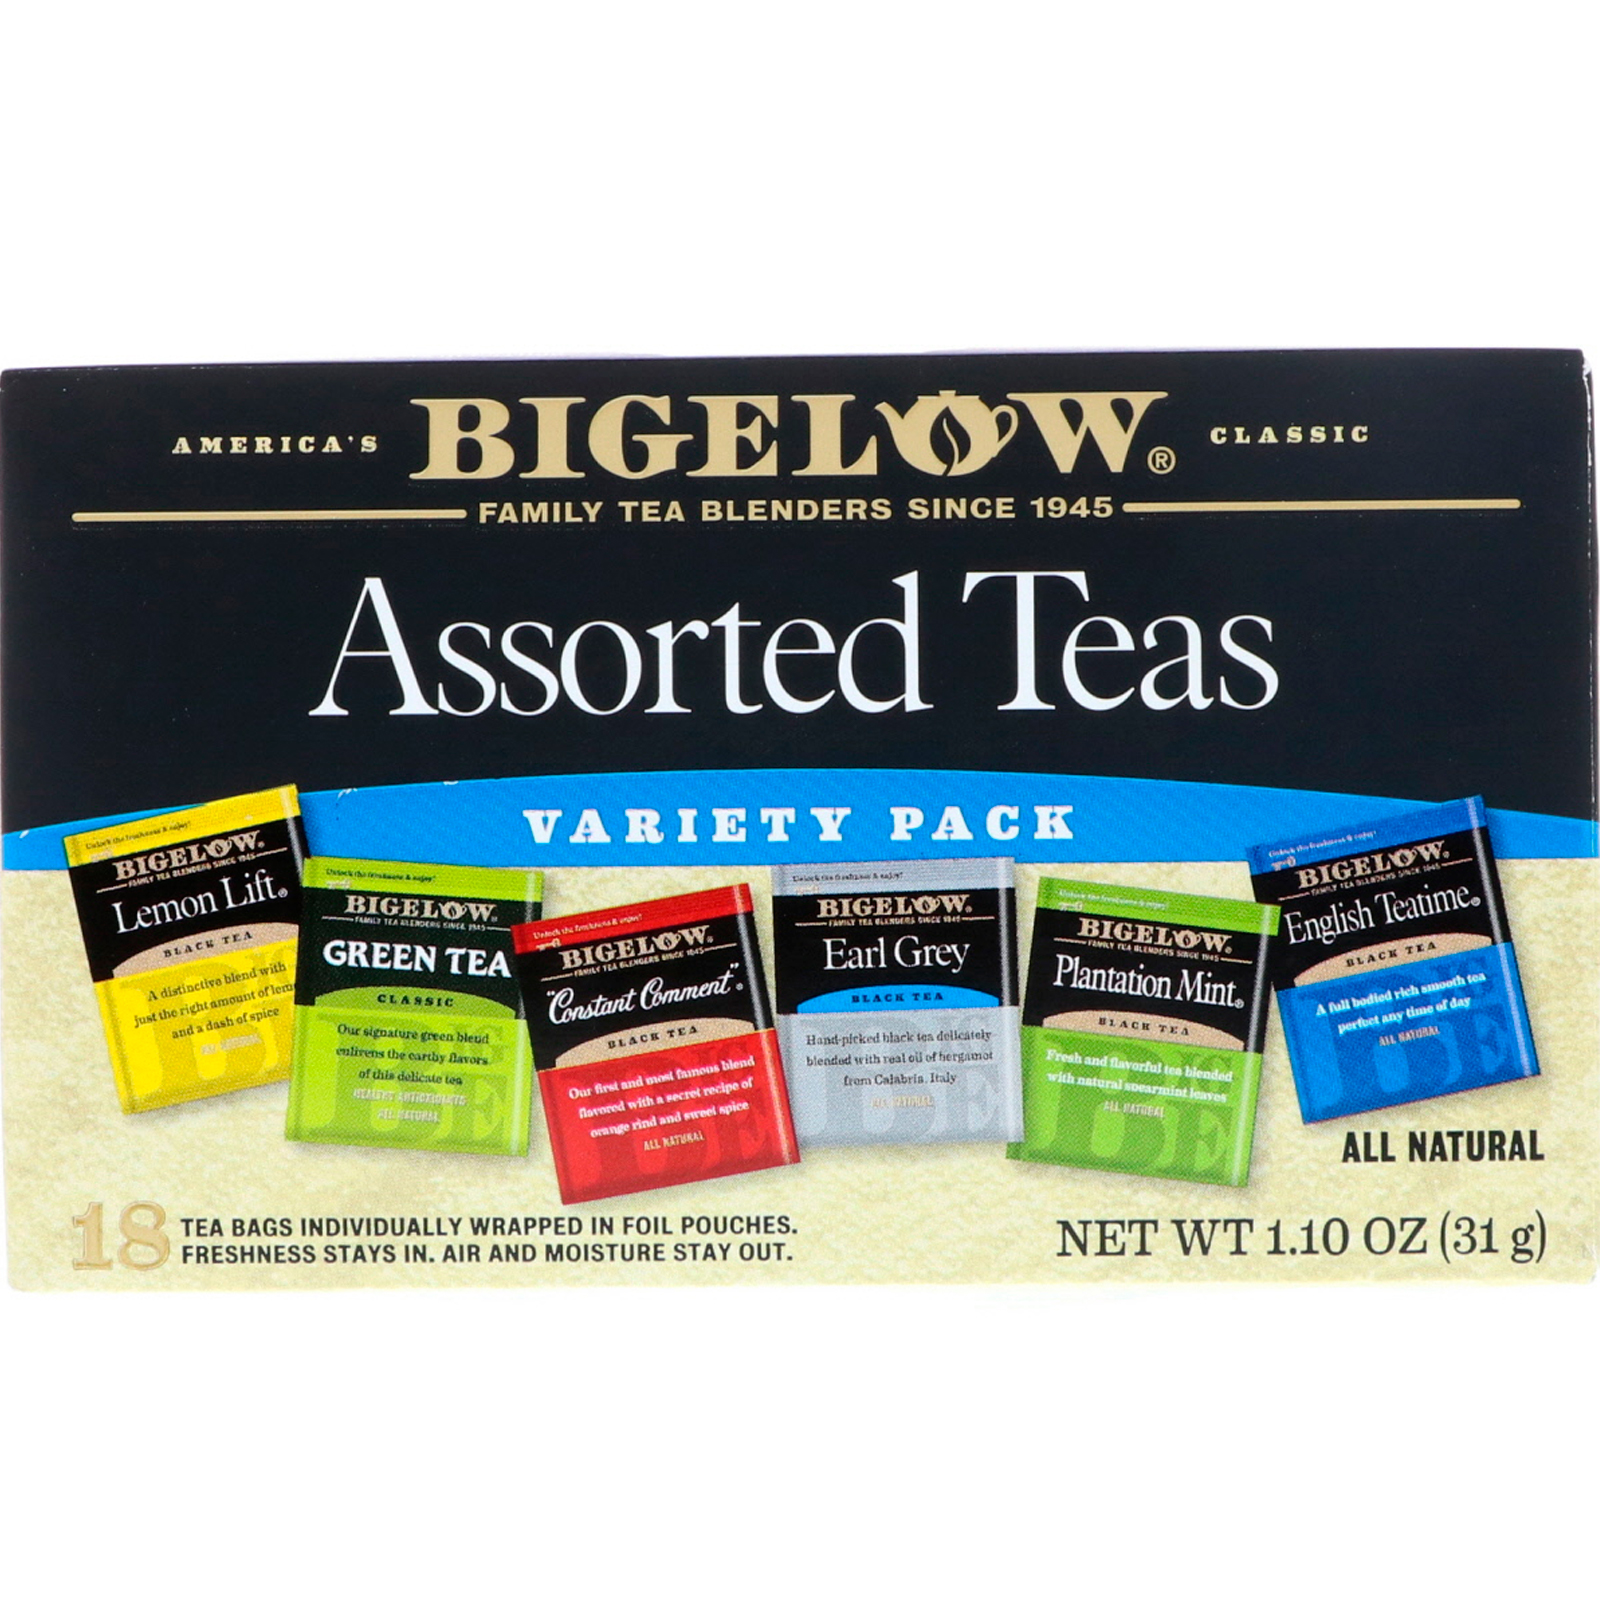 Elow Orted Teas Variety Pack 18 Tea Bags 1 10 Oz 31